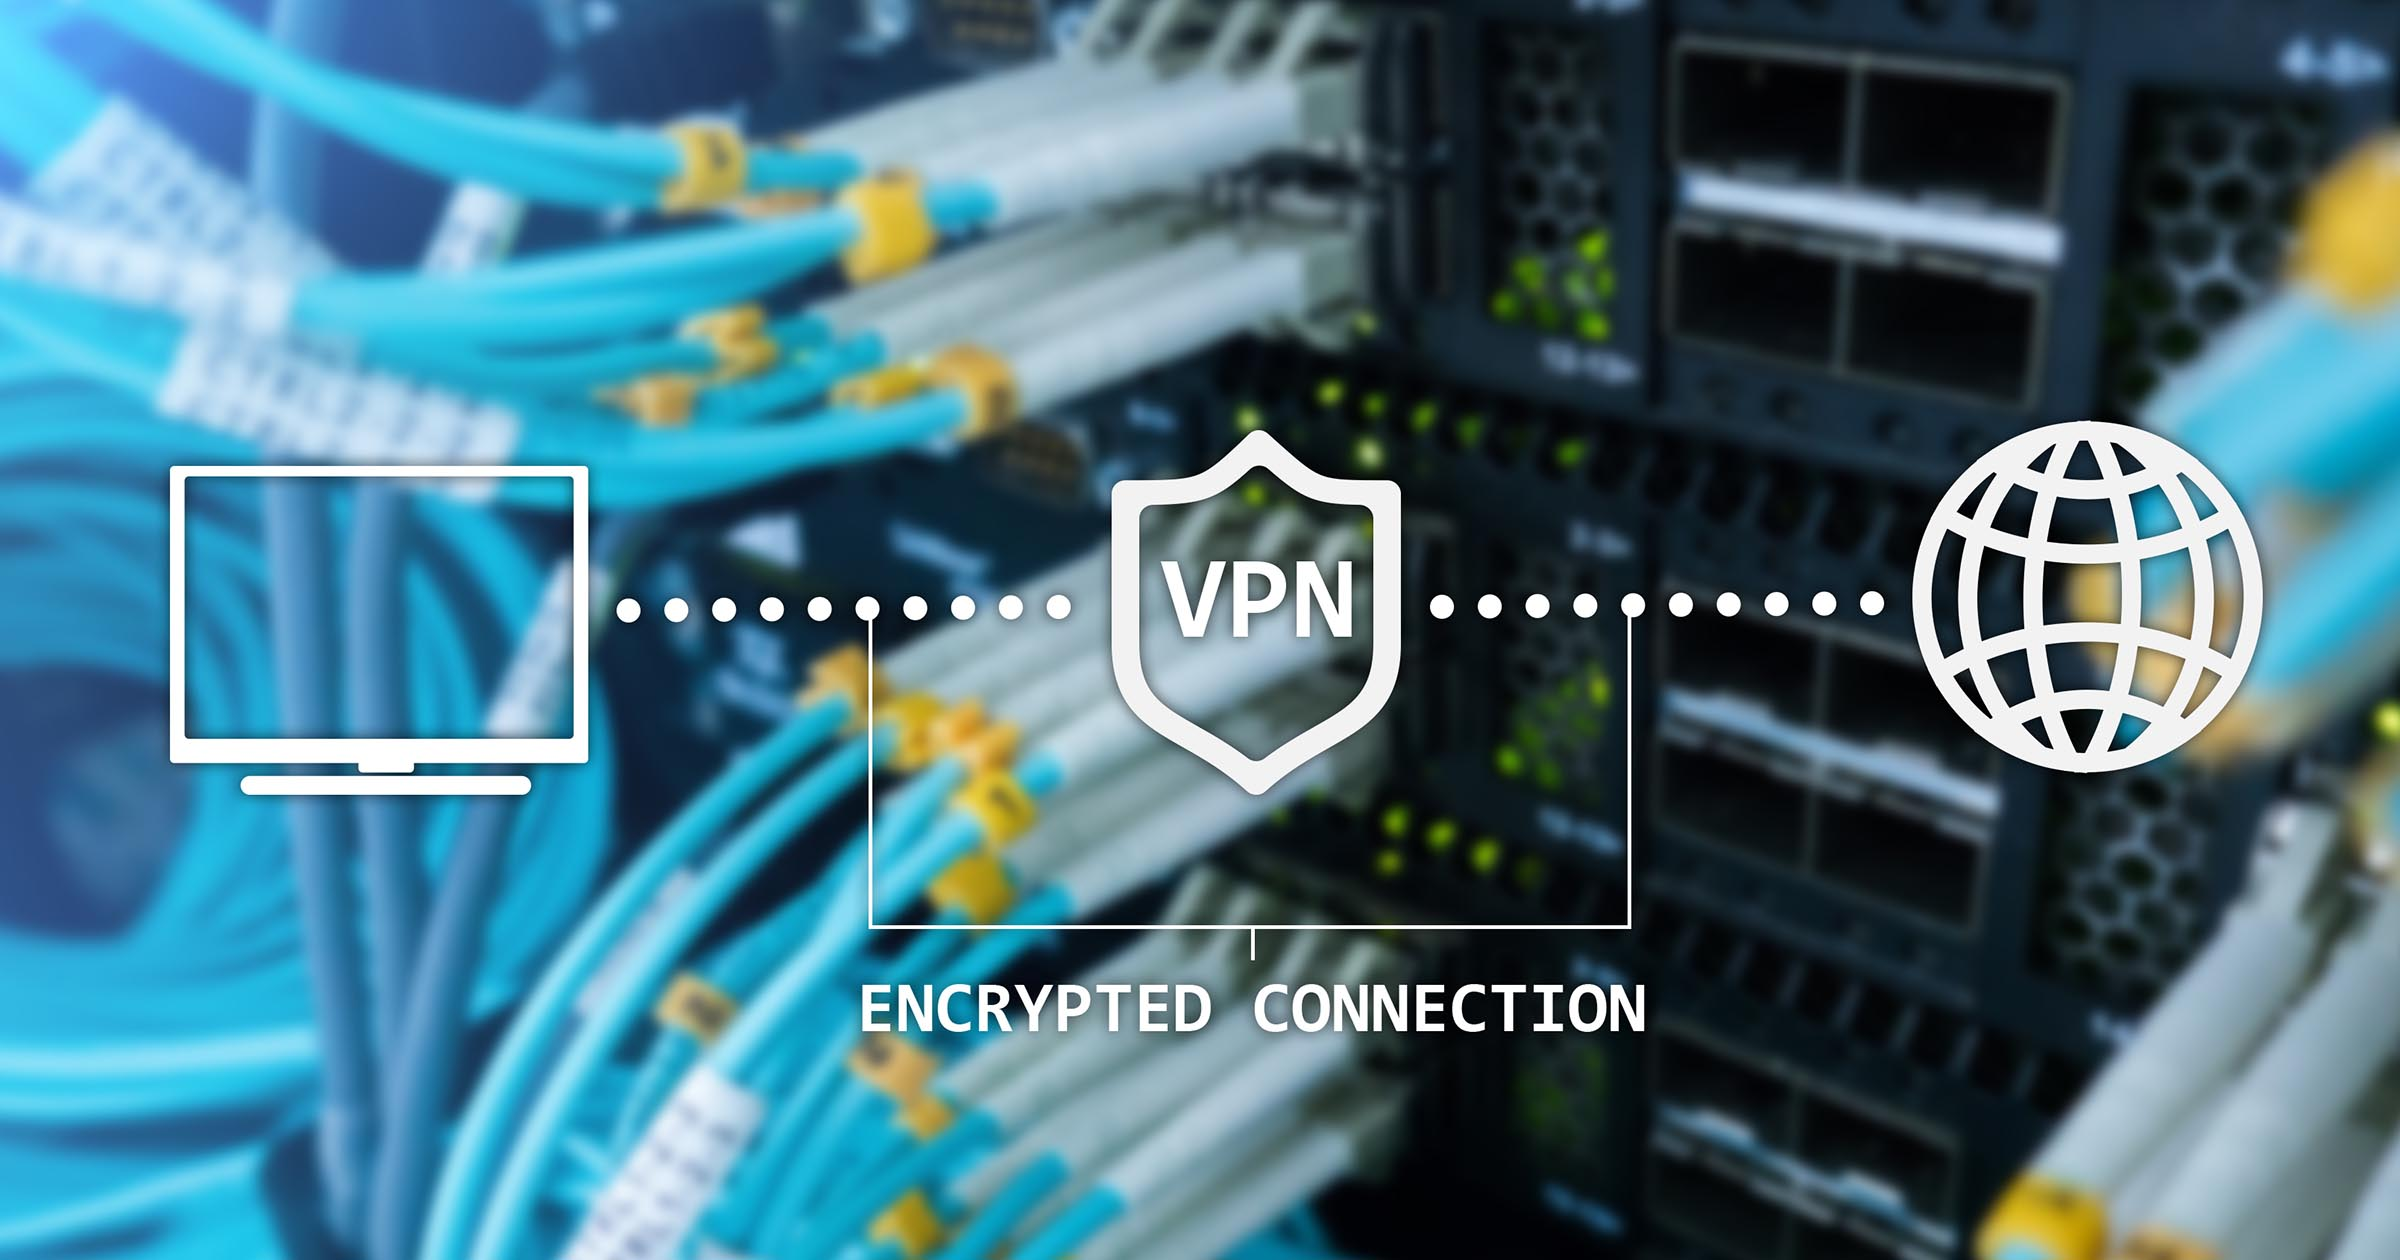 Can My ISP See I'm Using a VPN? - Ask Leo!